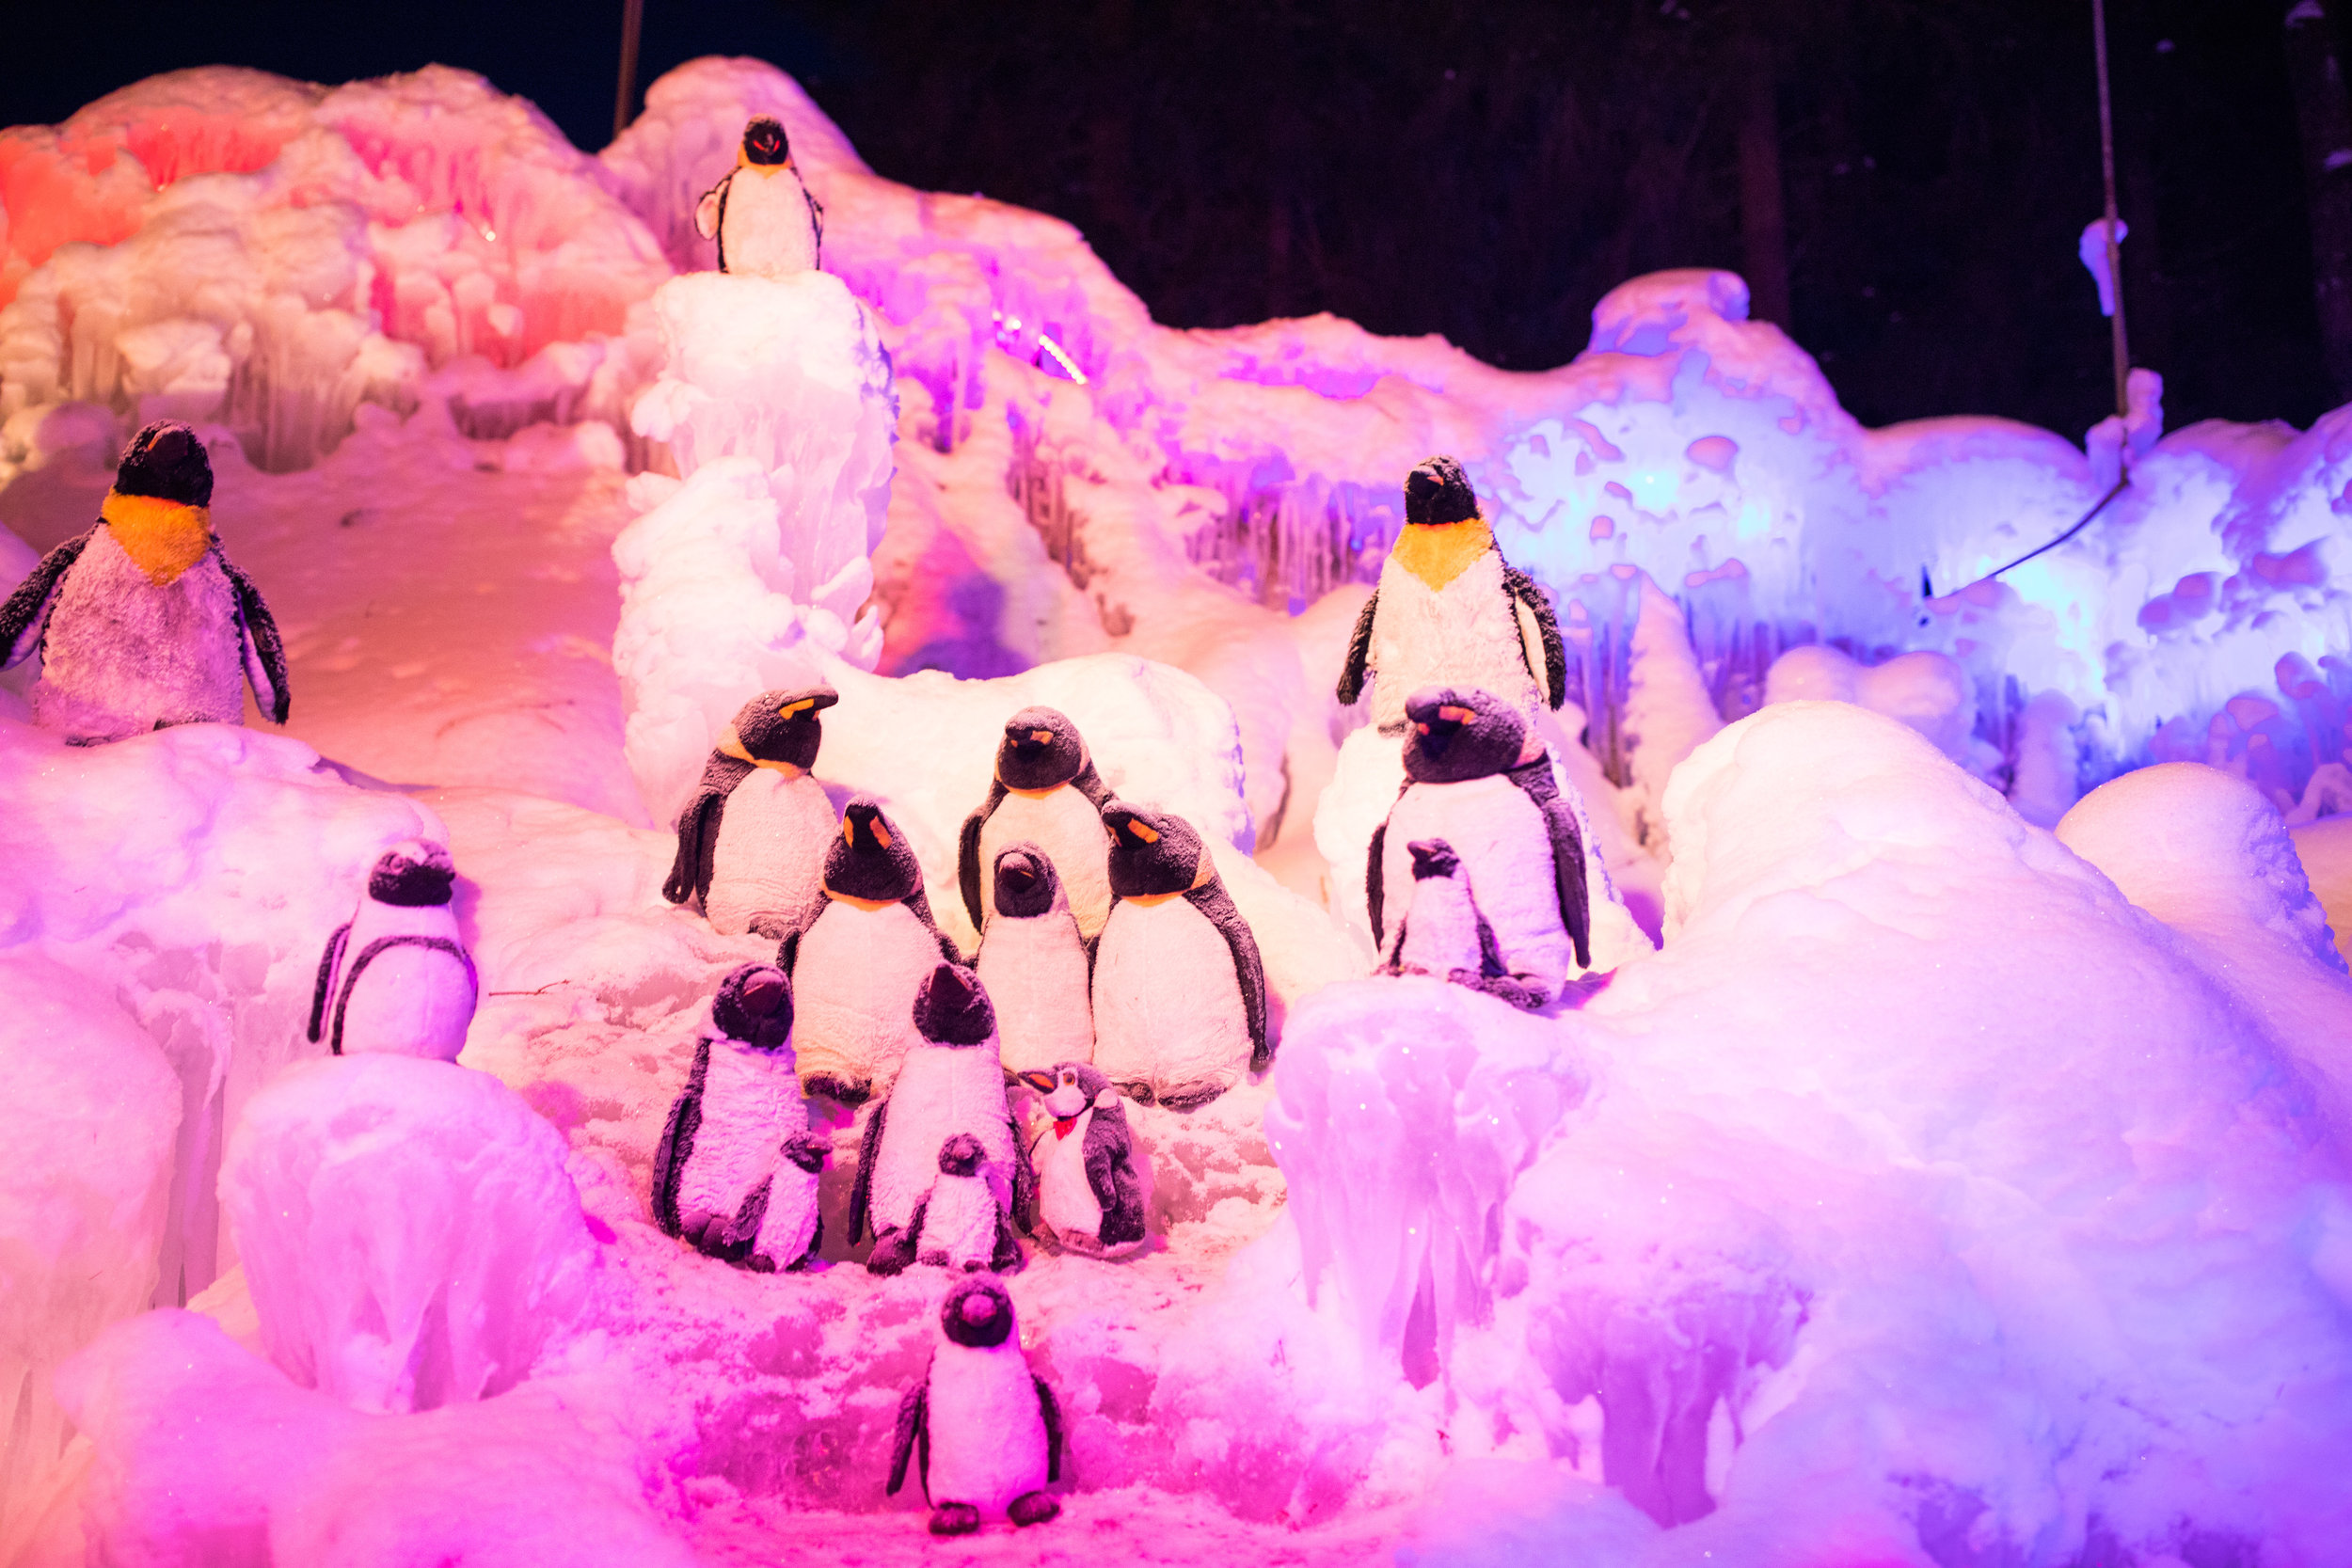 ice-palace-penguins-schwarzsee-switzerland-something-swiss.jpg